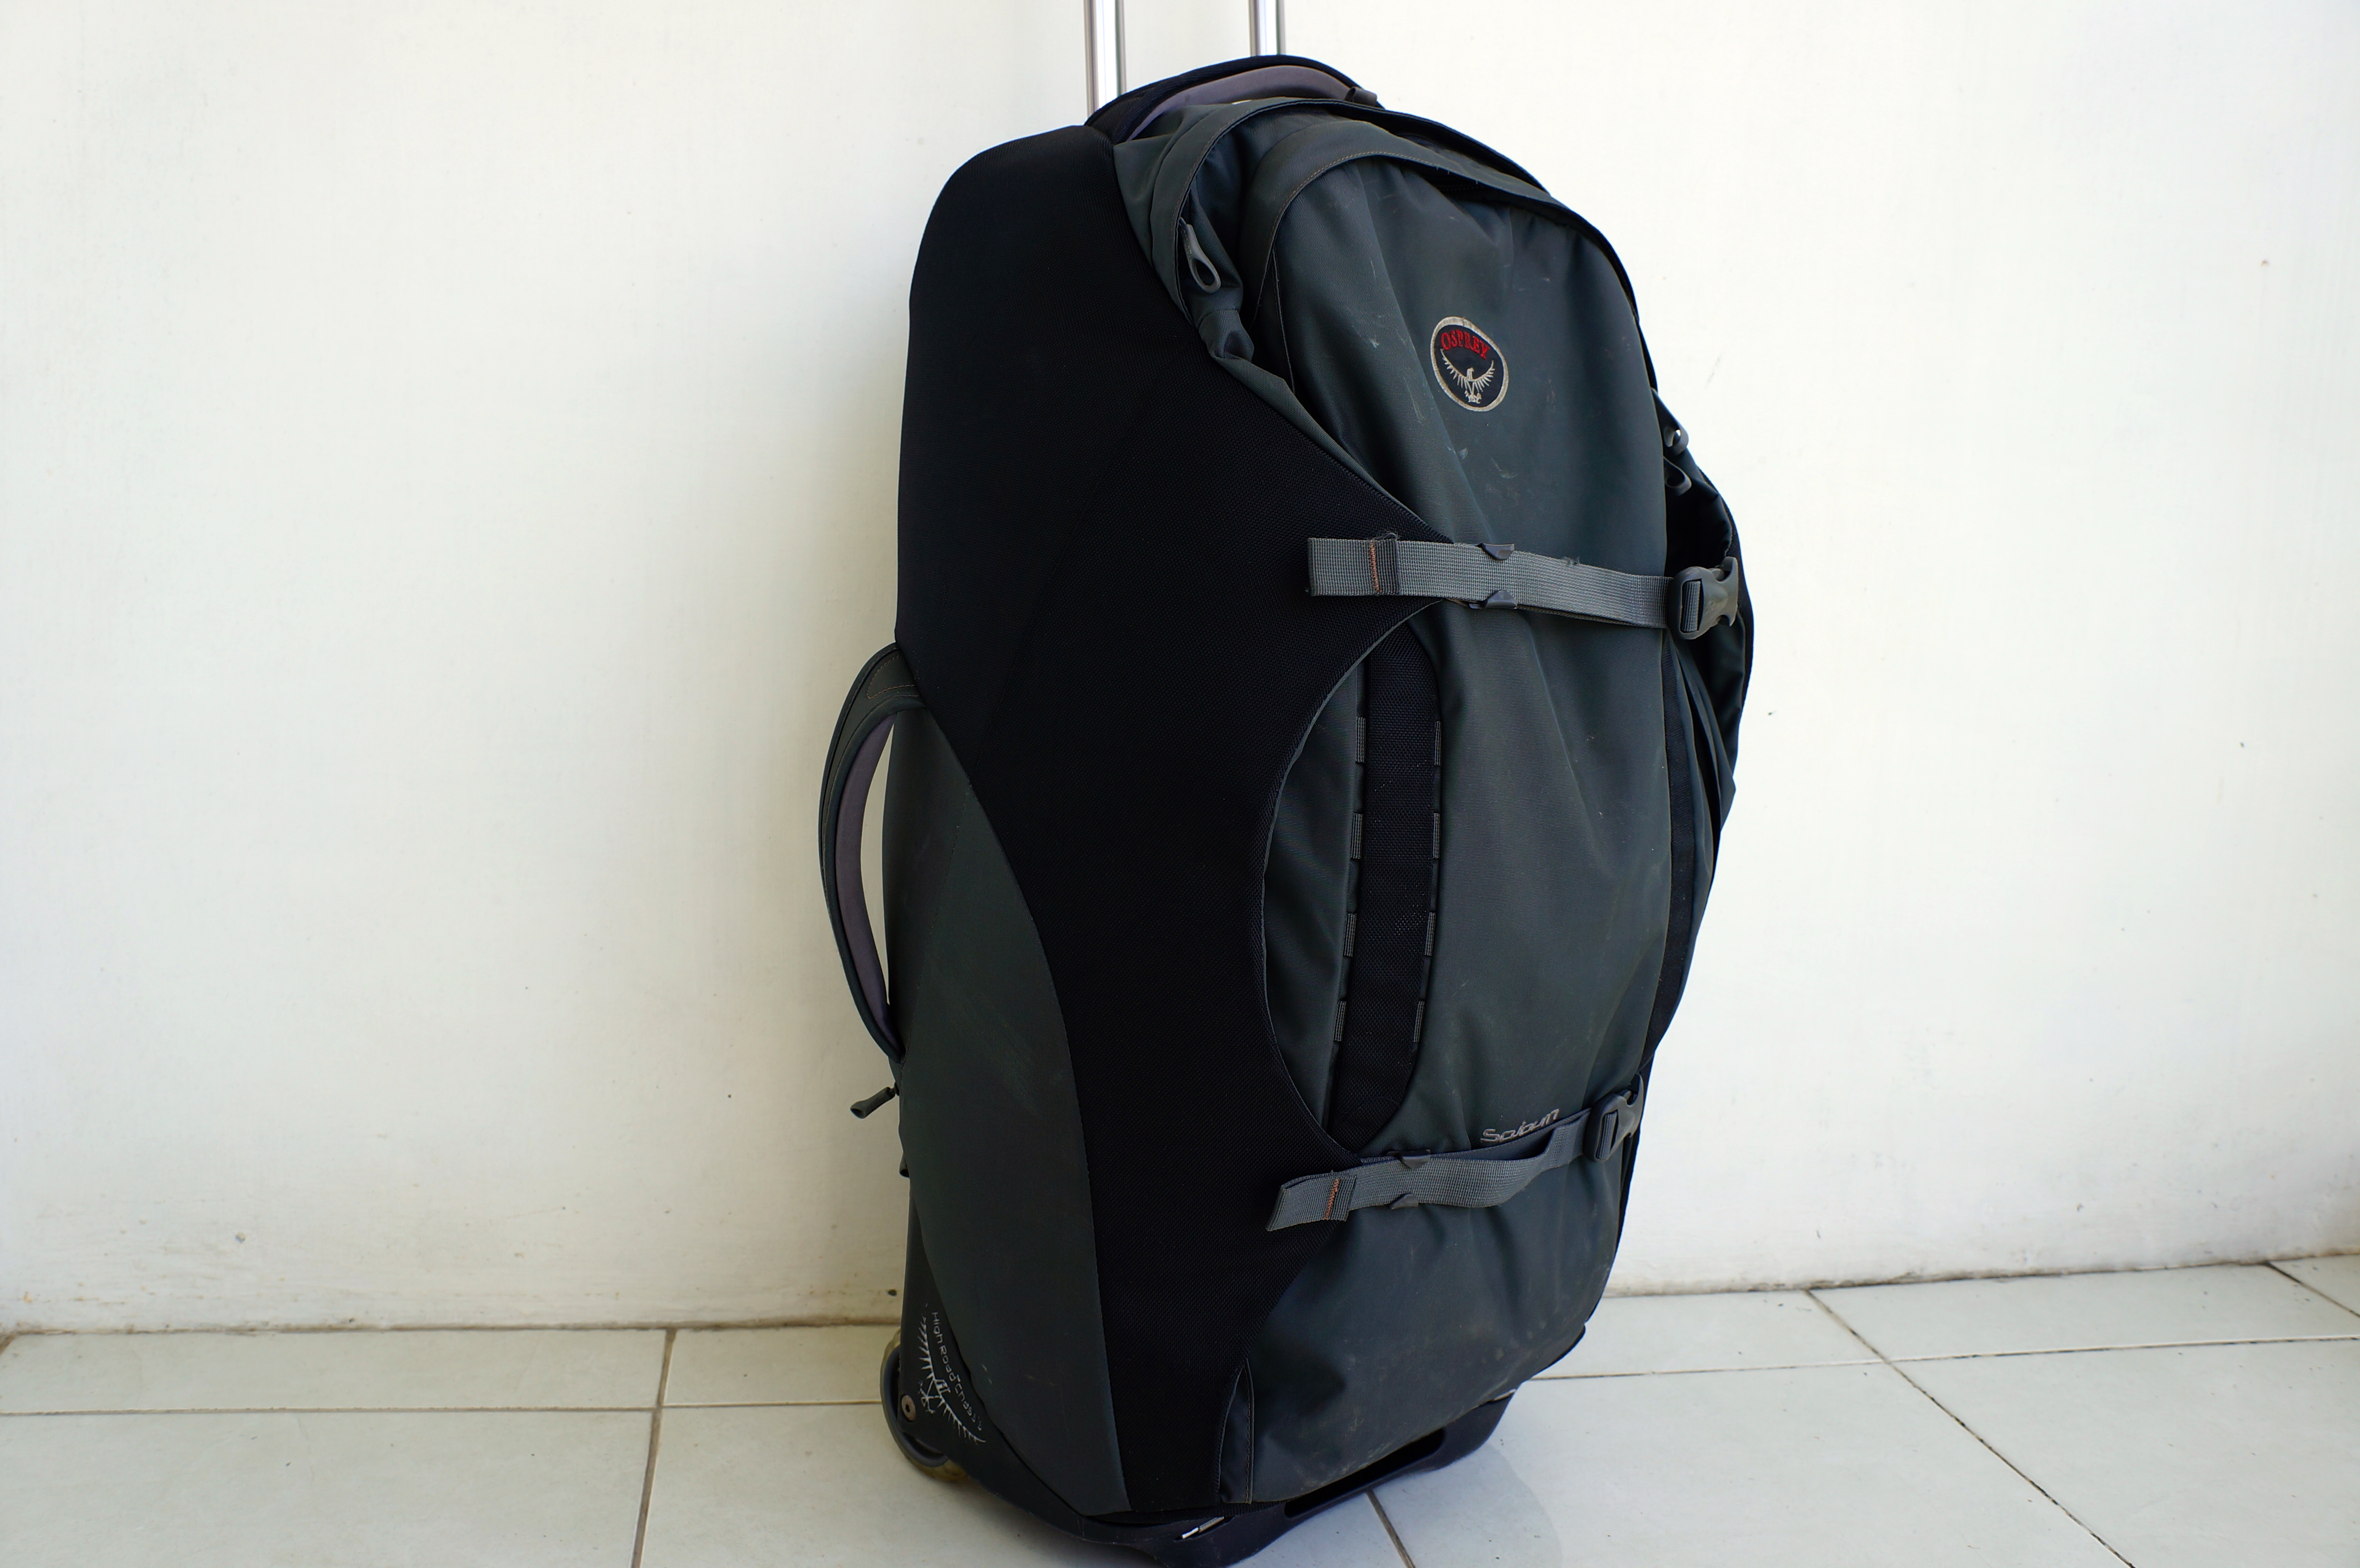 6d2ab8efa Osprey Sojourn Review - Perfect for Long-Term Travel